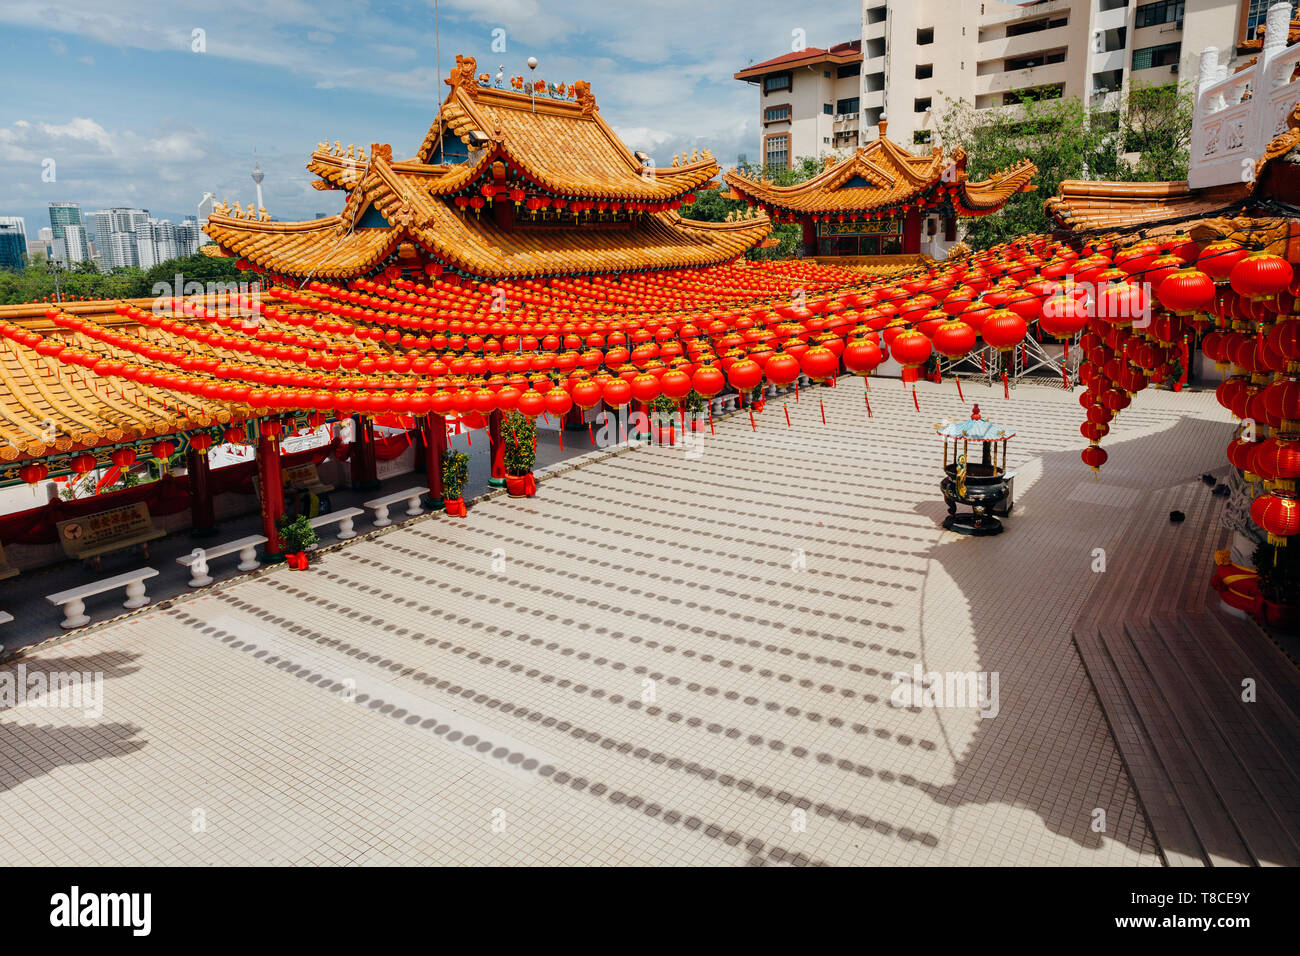 Thean Hou Temple decorated with lanterns for the Chinese New Year, Kuala Lumpur, Malaysia Stock Photo